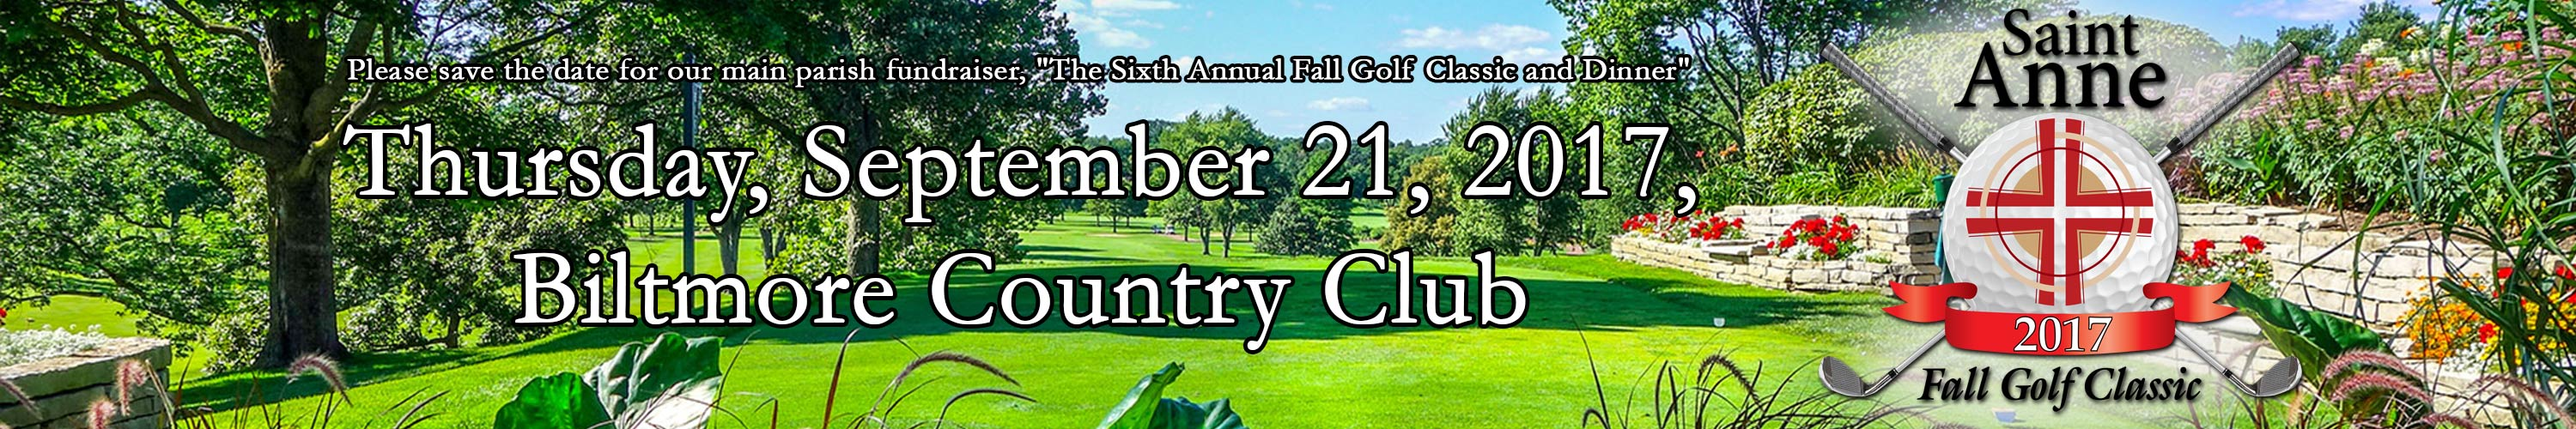 Golf-Outing-Banner-2017-slide